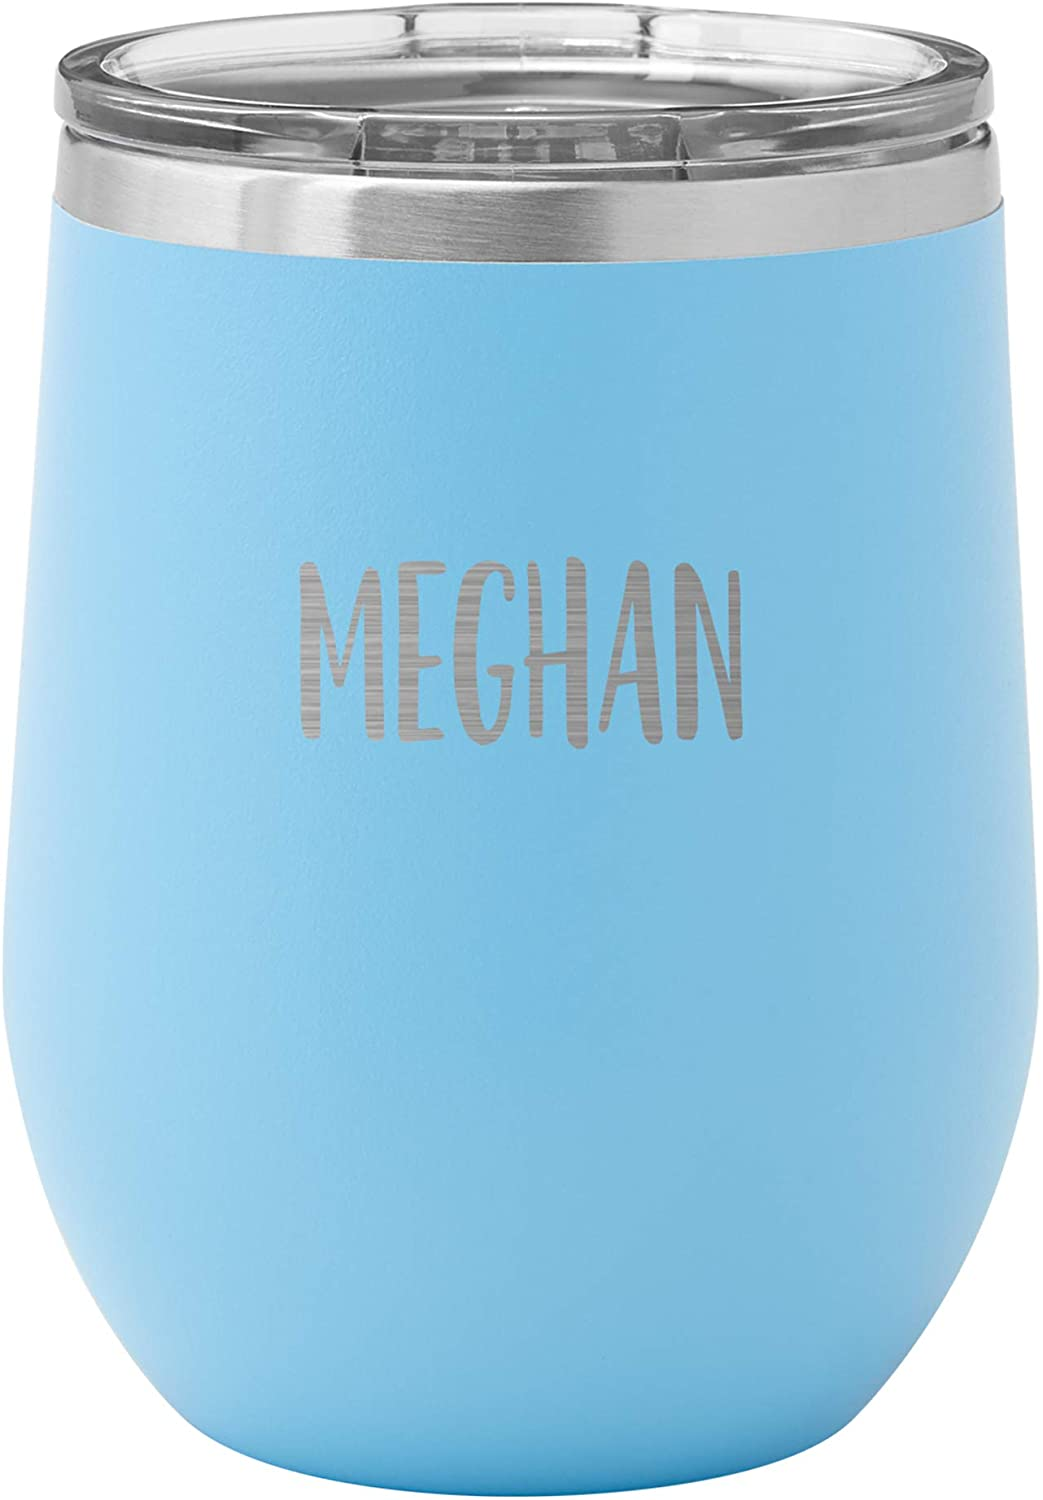 Personalized Wine Tumbler – Double Wall Vacuum Insulated Stainless steel - Custom engraved - Teal Tumbler with script font any message customized - 20 oz. - Hot or cold